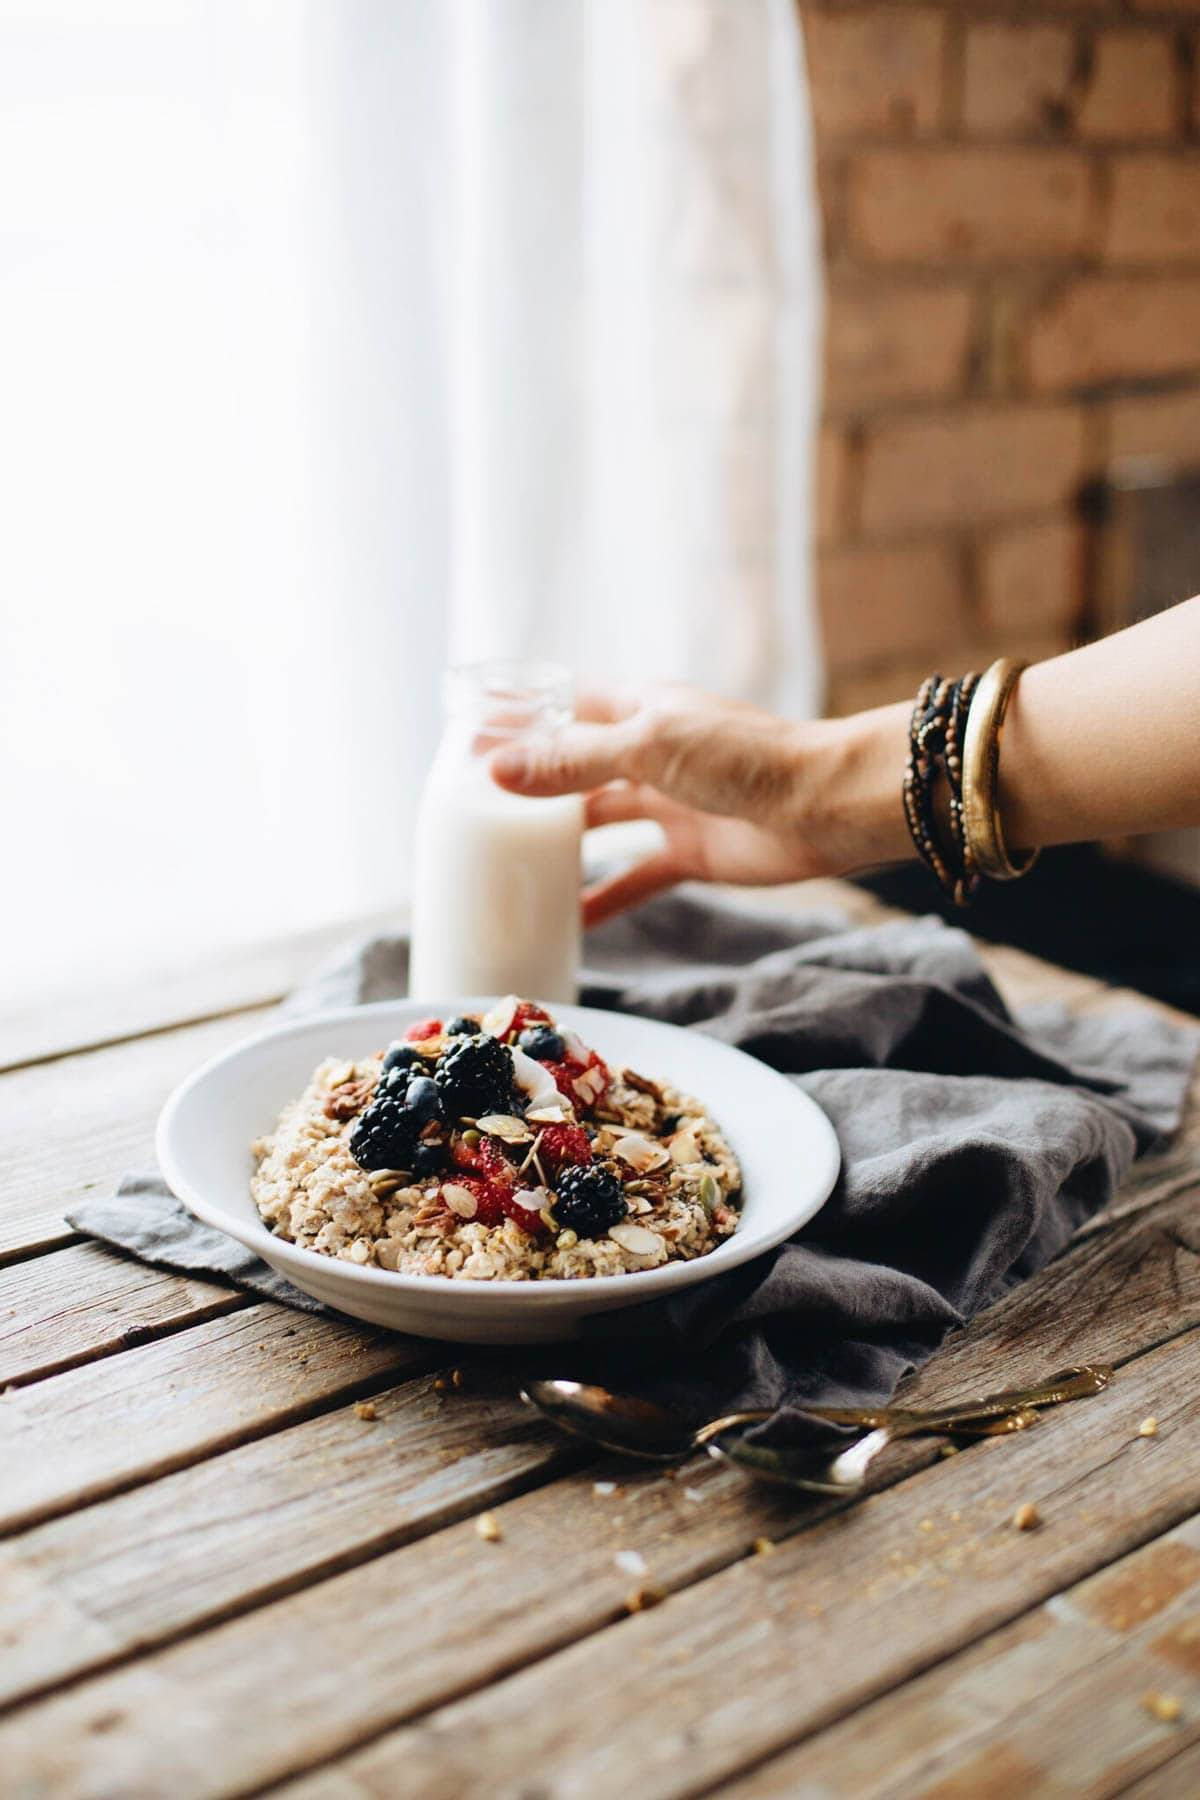 Hand grabbing a glass of milk next to a plate of granola with berries.